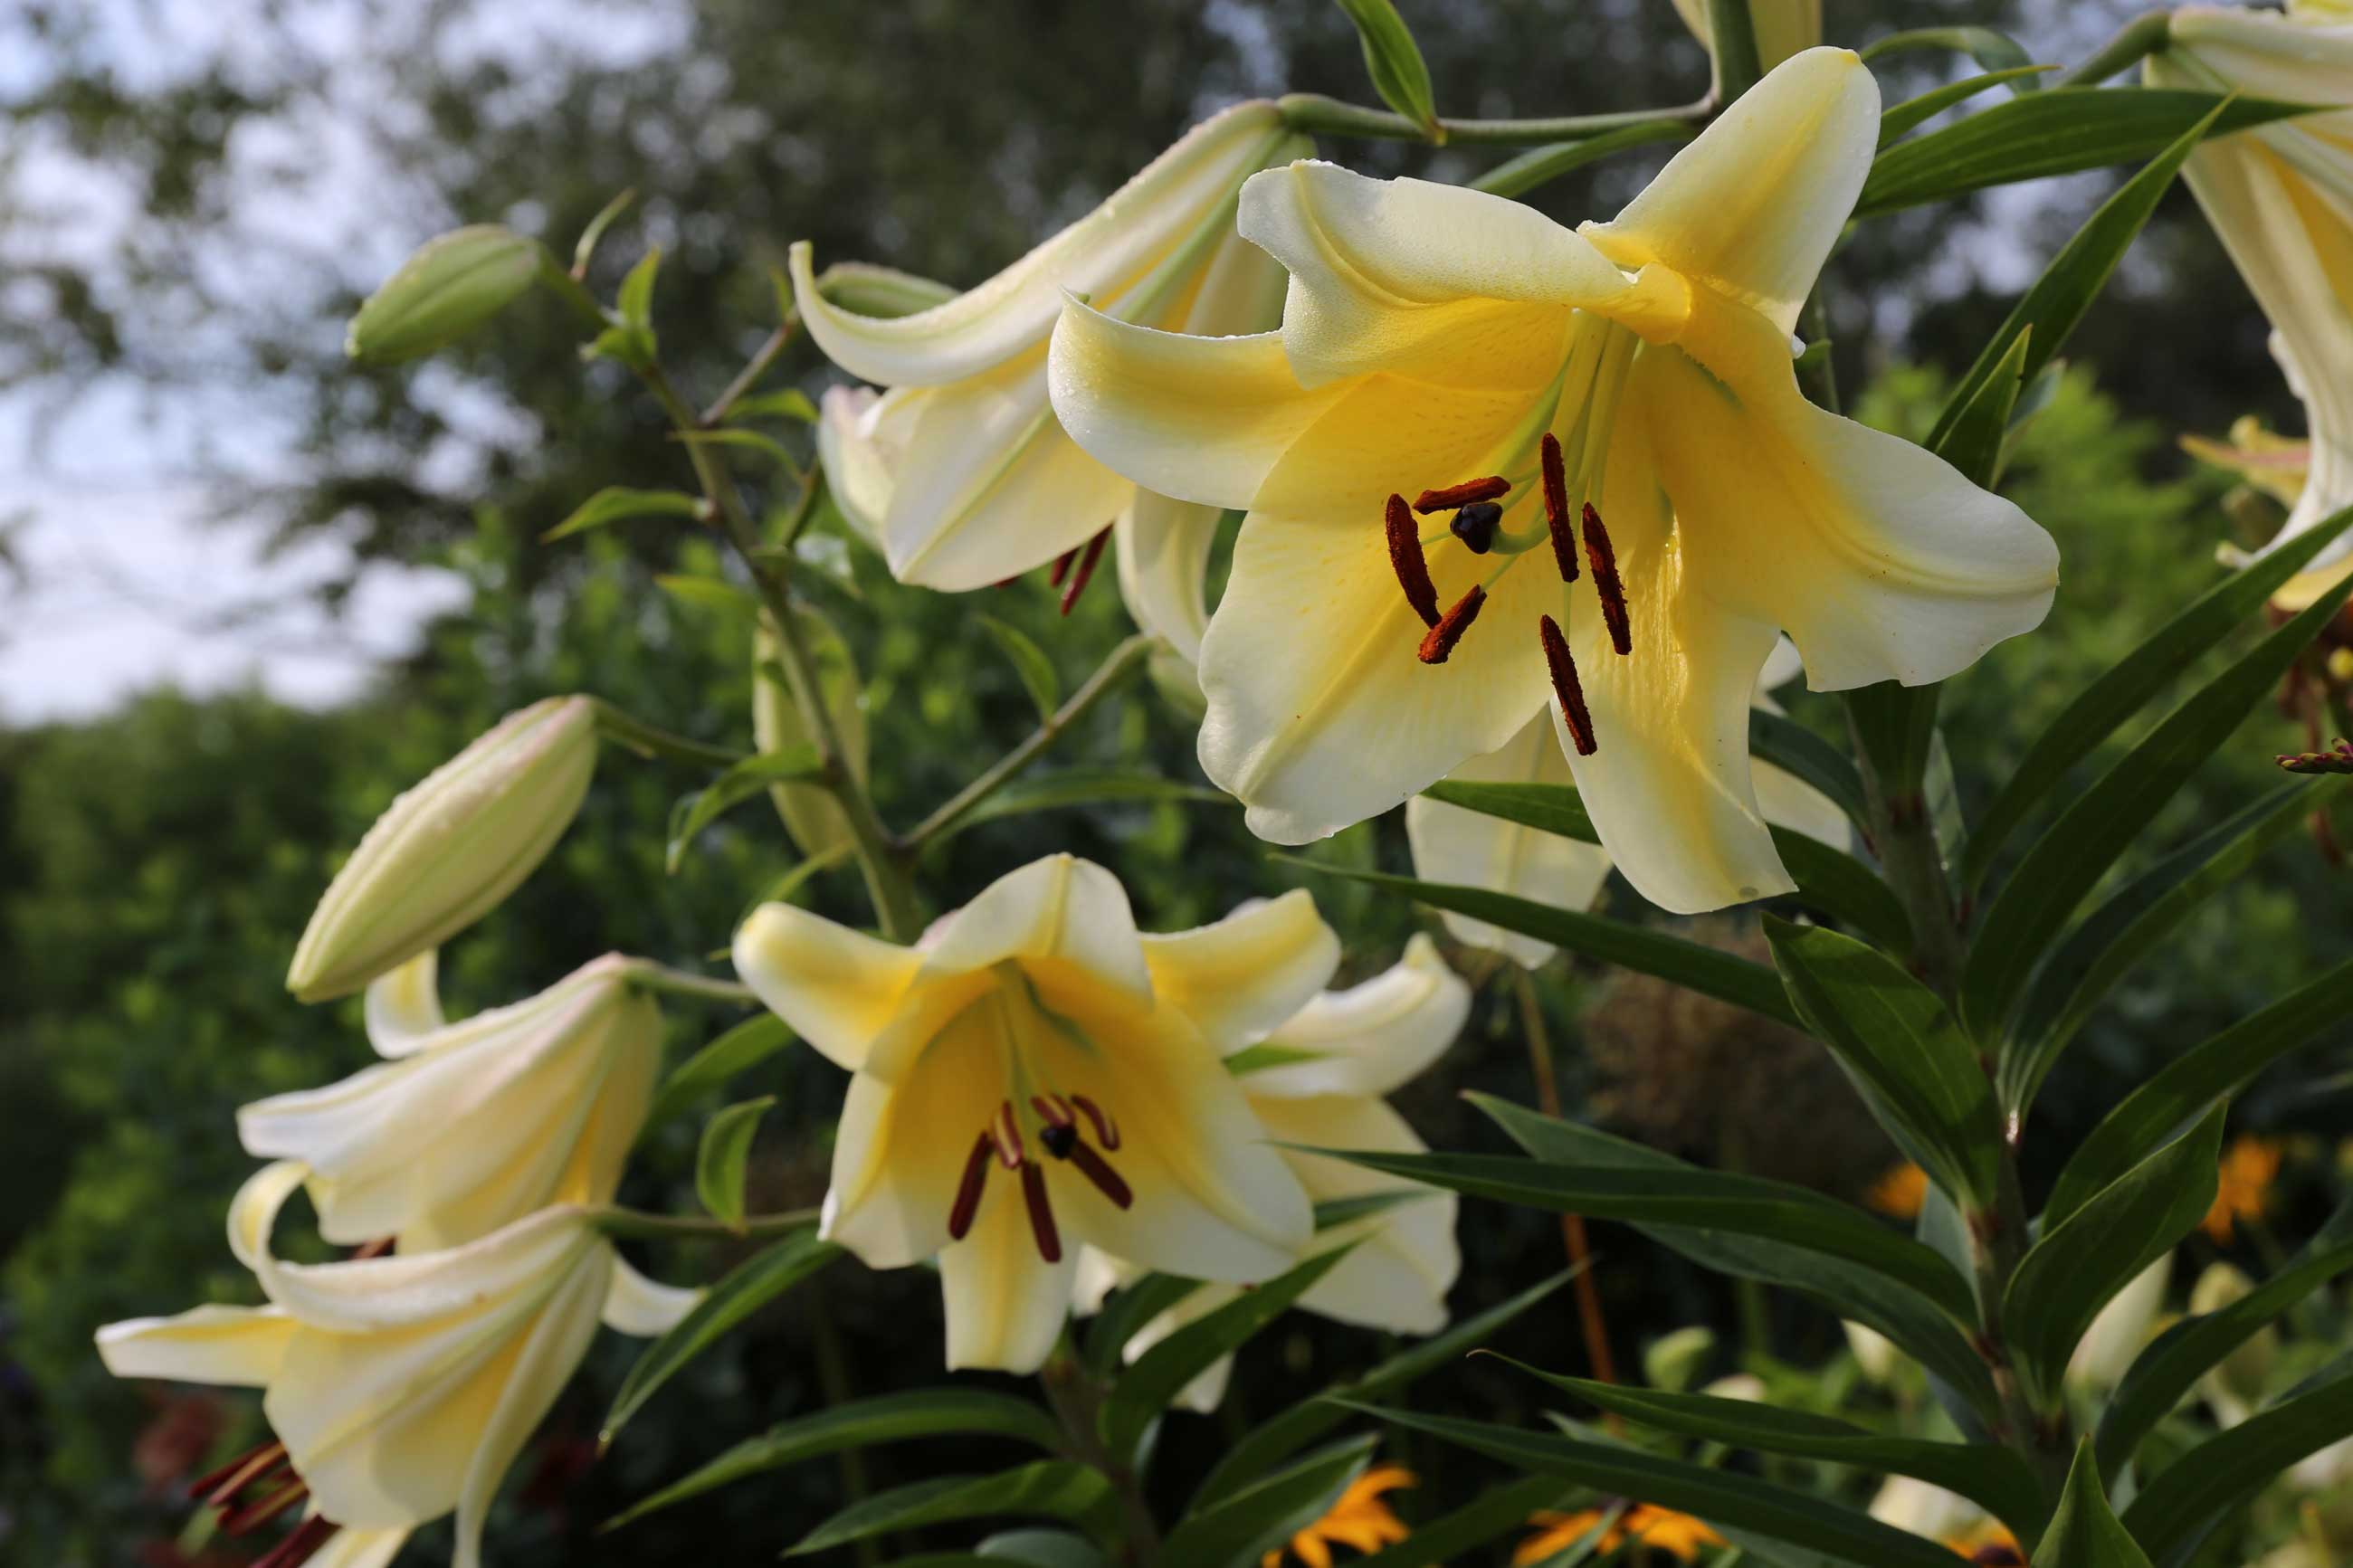 Know your lilies asiatics orientals trumpets and more know your lilies asiatics orientals trumpets and more longfield gardens izmirmasajfo